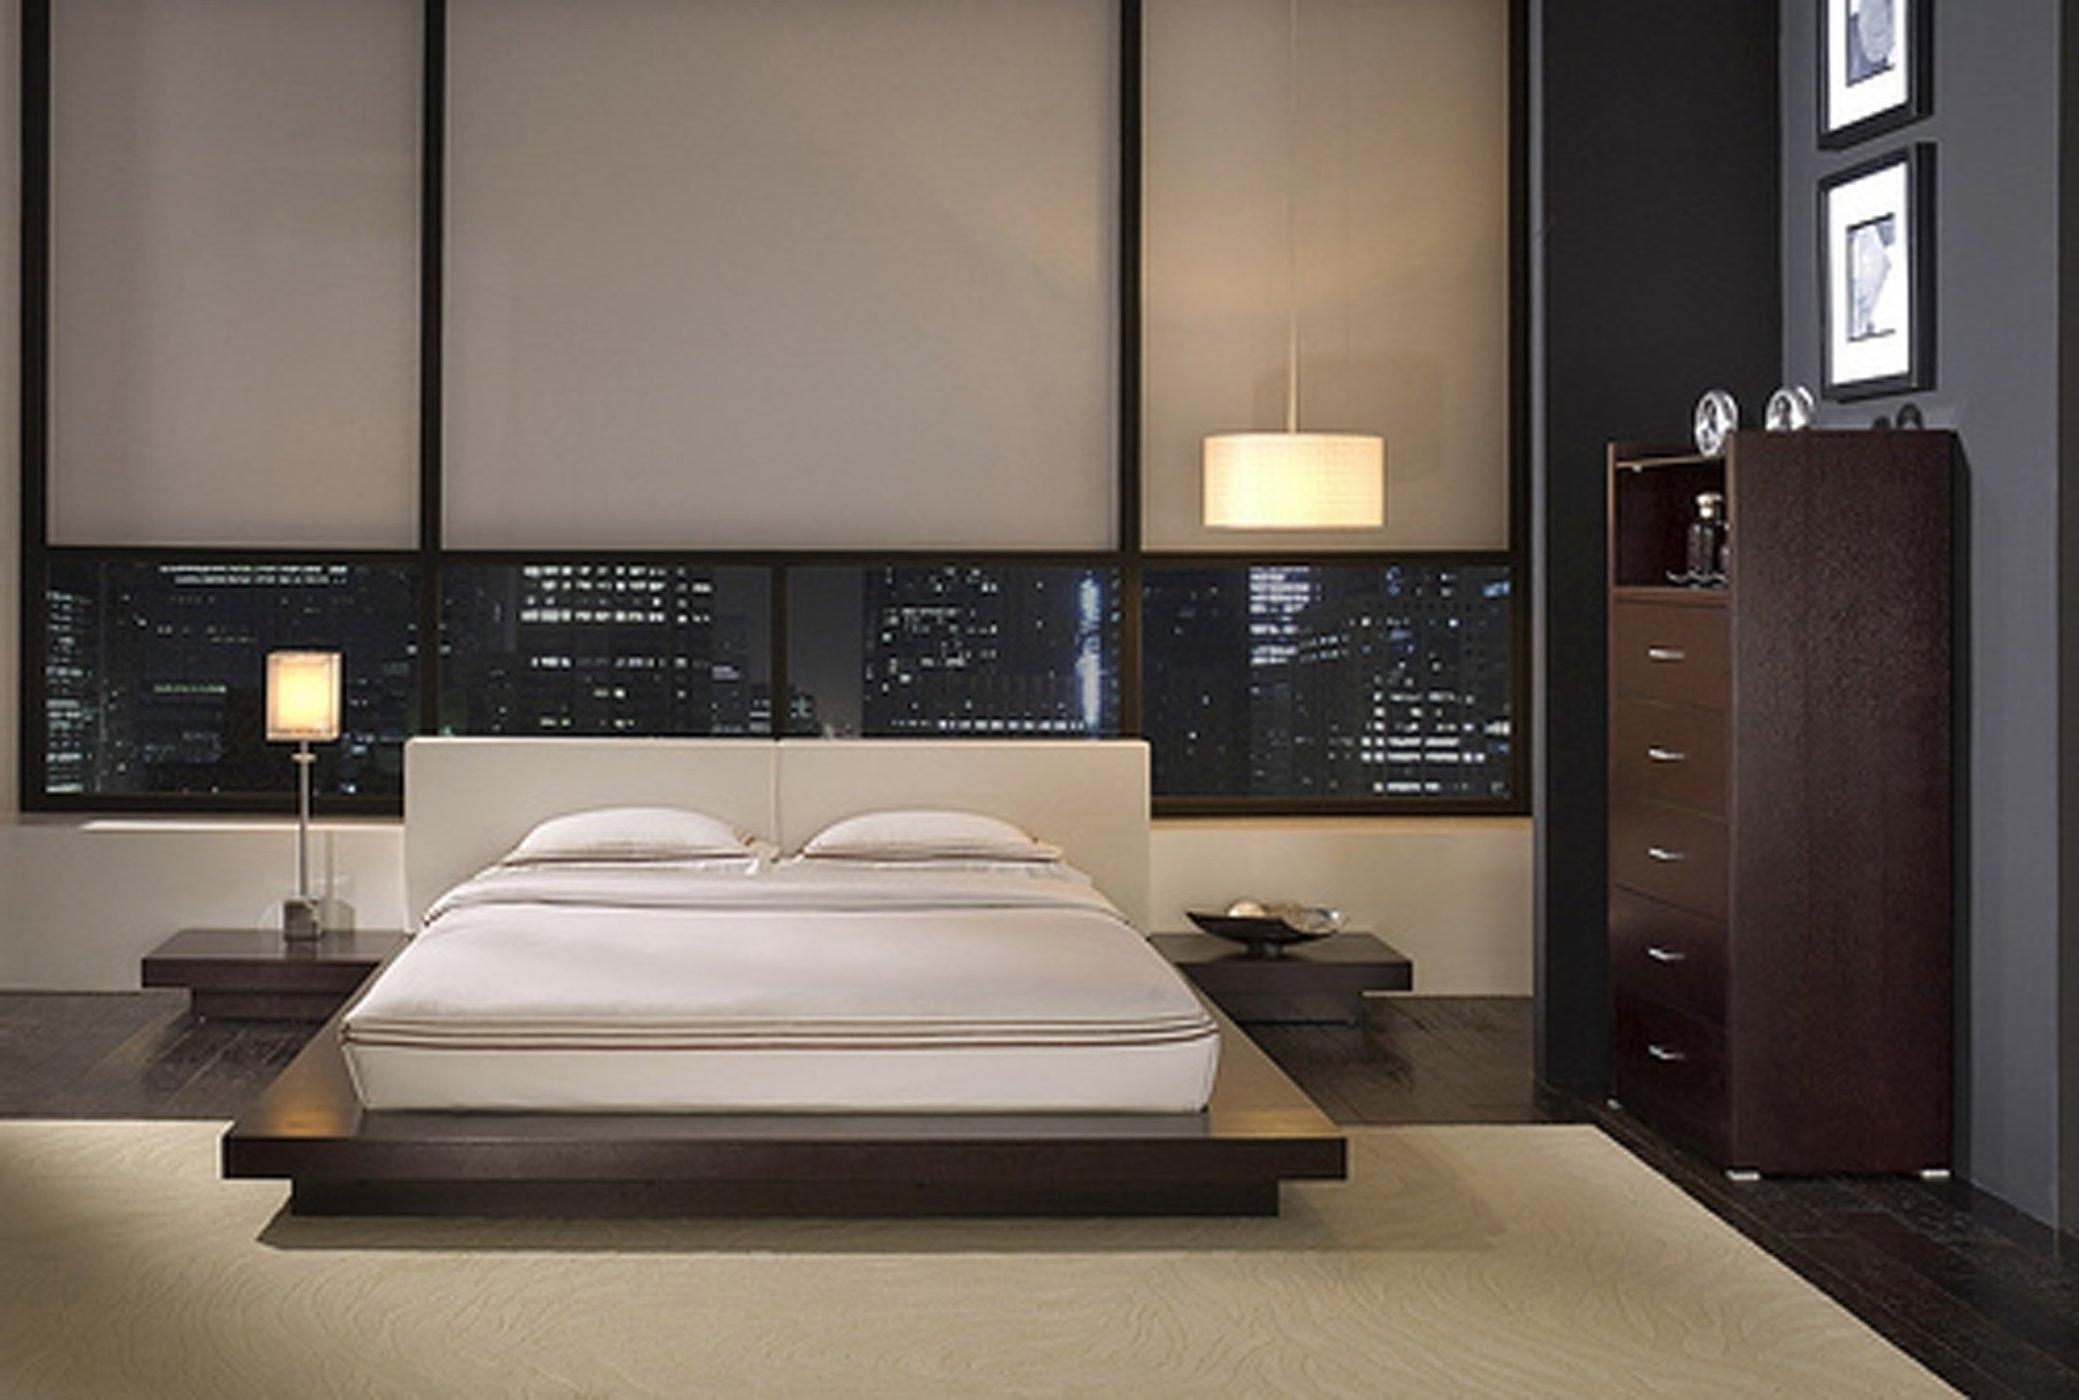 Wall Art For Mens Bedroom Home Design Inspiration Apartment Pertaining To Wall Art For Mens Bedroom (View 17 of 20)